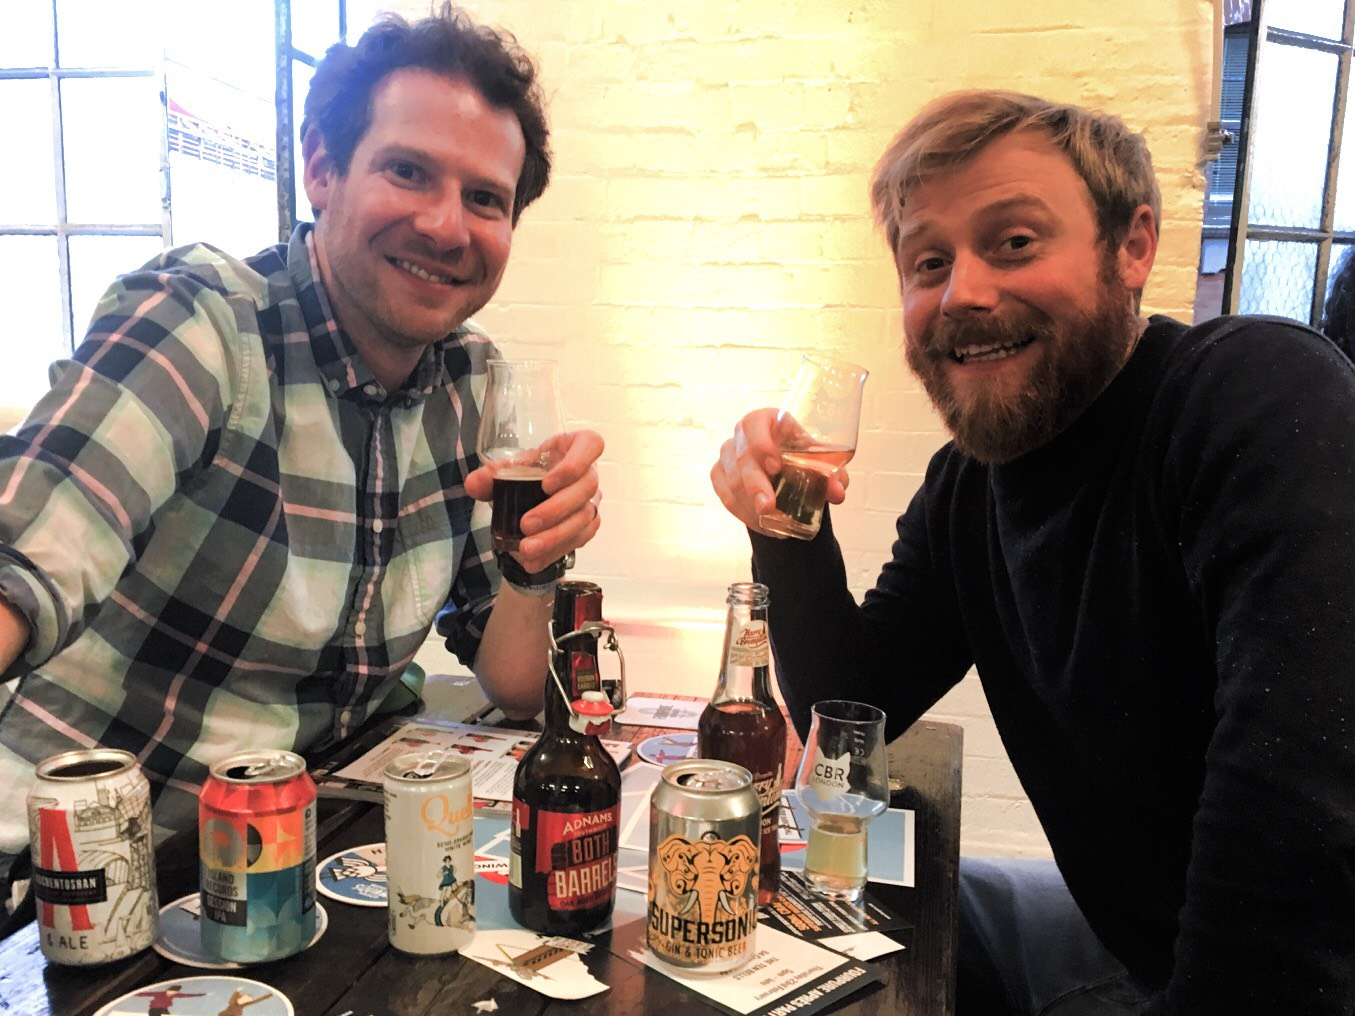 Will Podcast For Beer: Olly and Ollie get Zeitgeisting at London's Craft Beer Rising festival